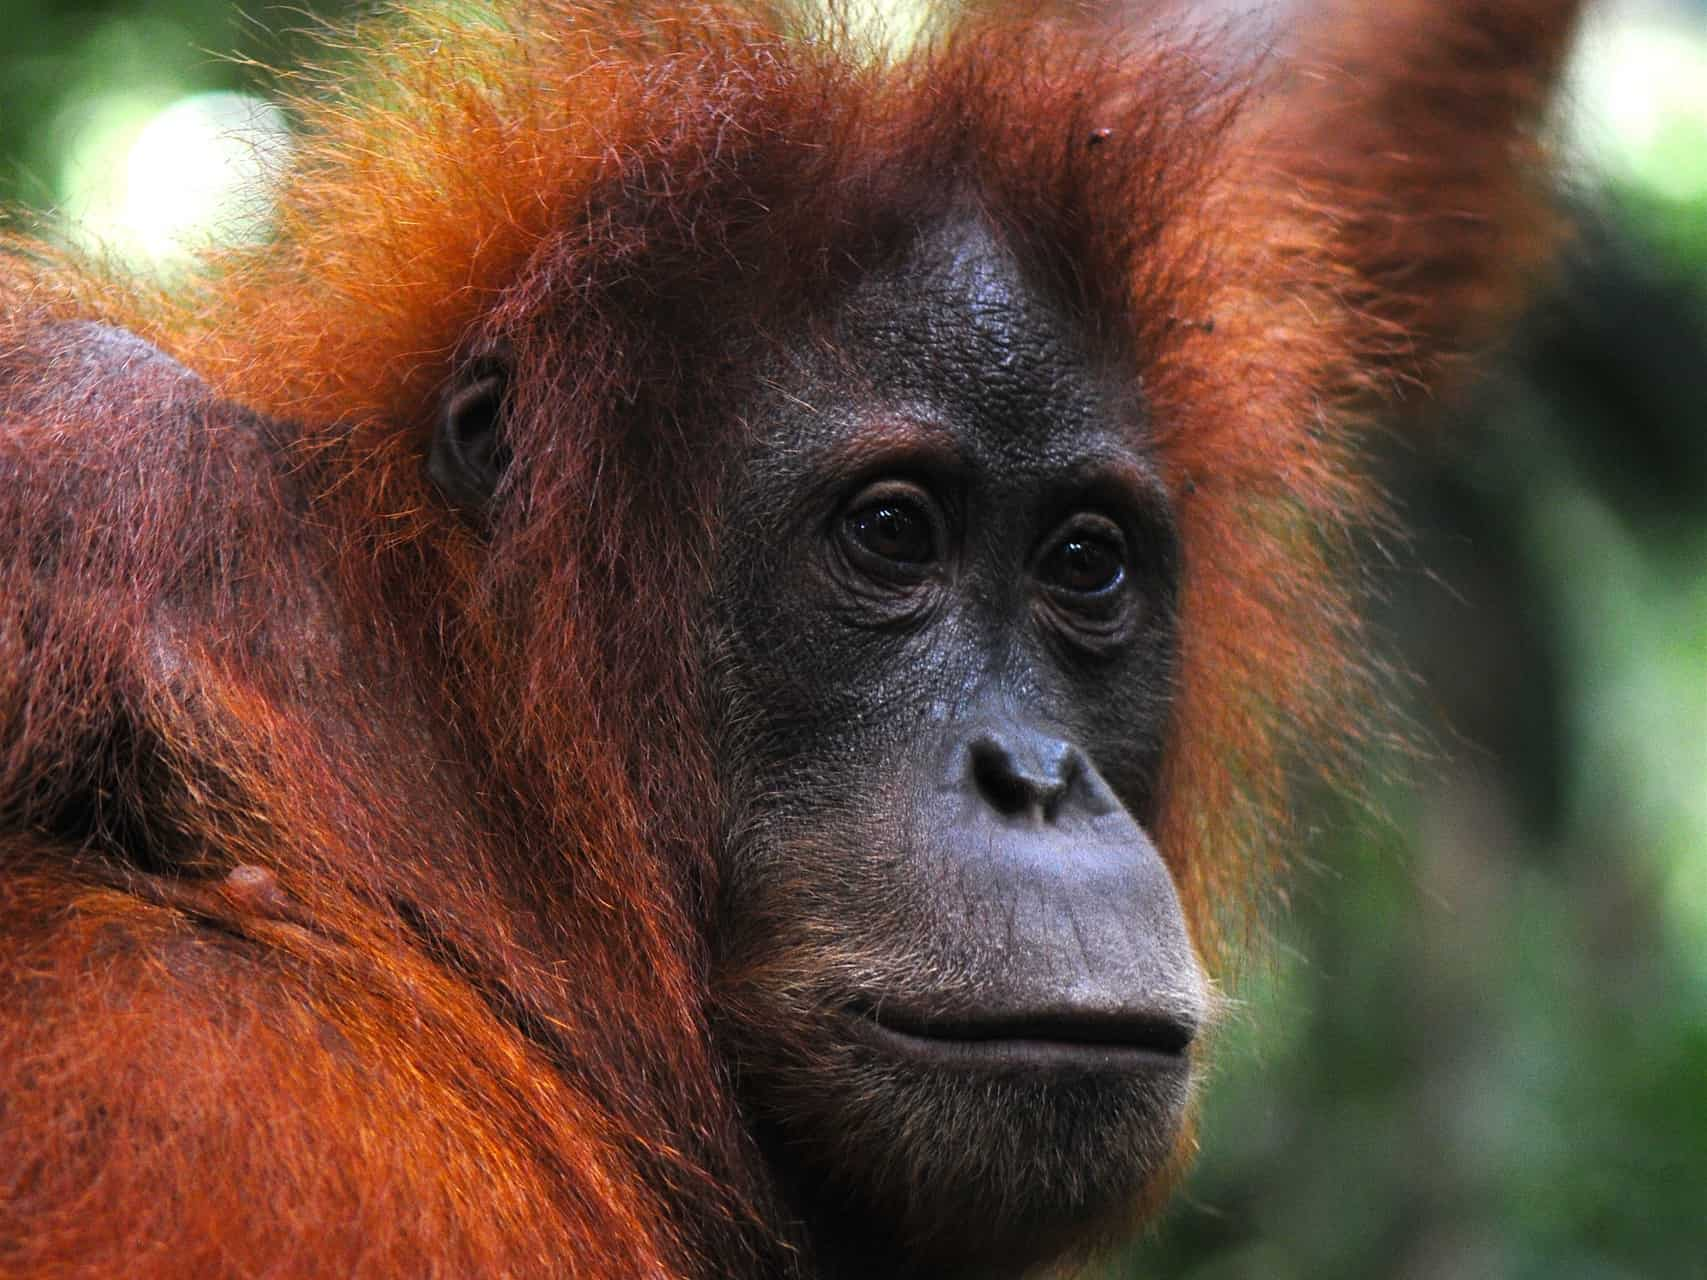 SUMATRAN ORANGUTAN IN GUNUNG LEUSER NATIONAL PARK - BUKIT LAWANG JUNGLE TREKKING BY SUMATRA ECOTRAVEL